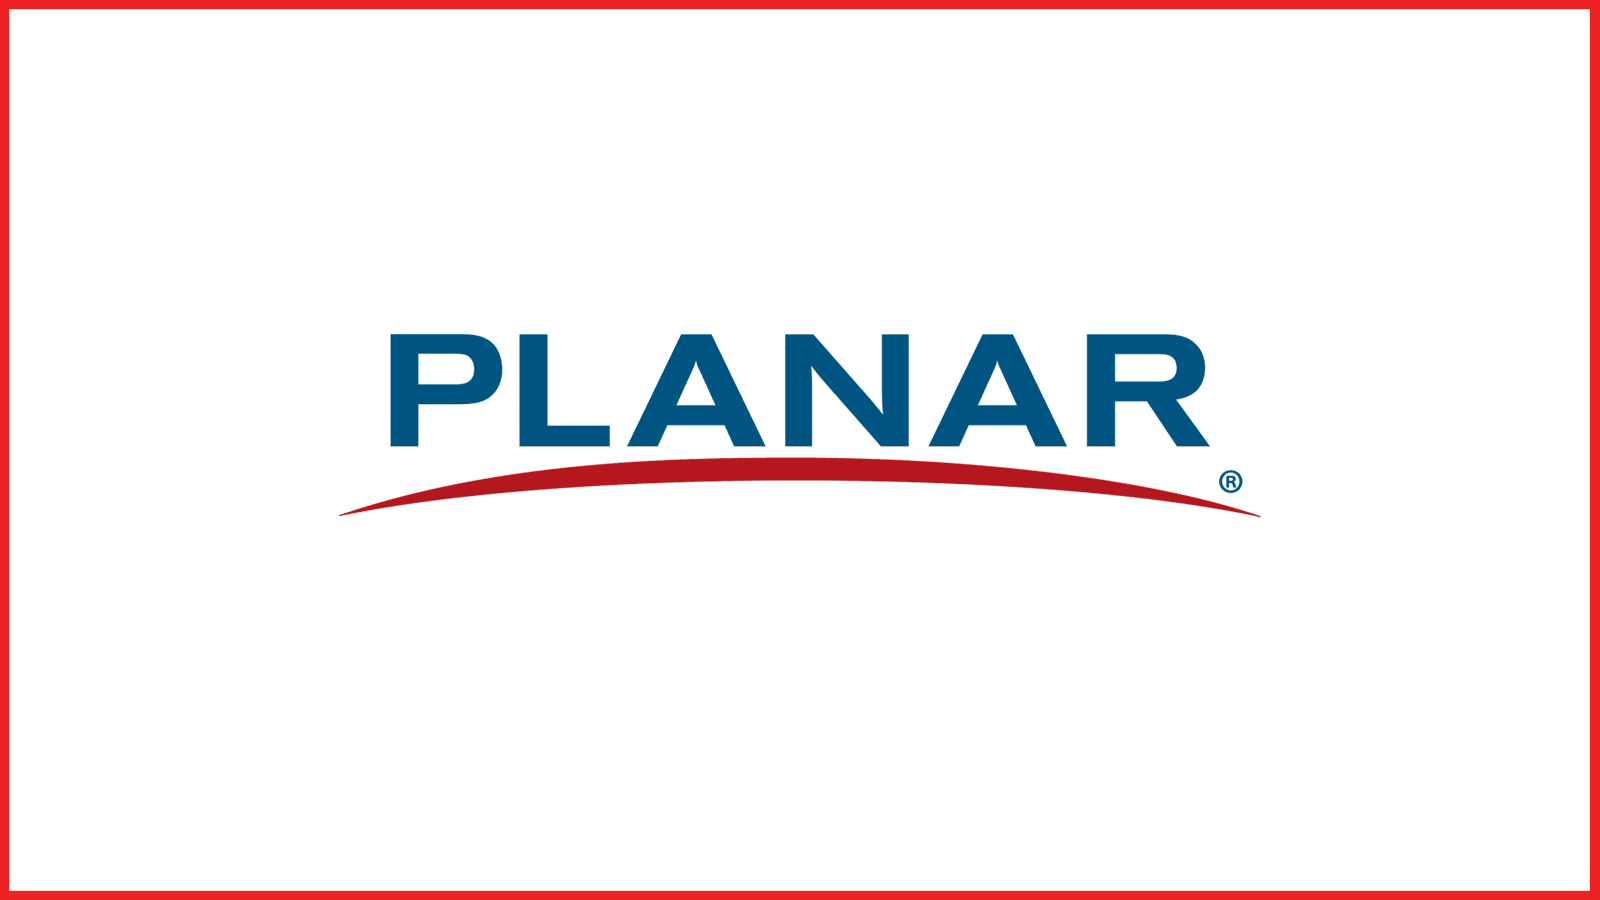 planar® logo with red border